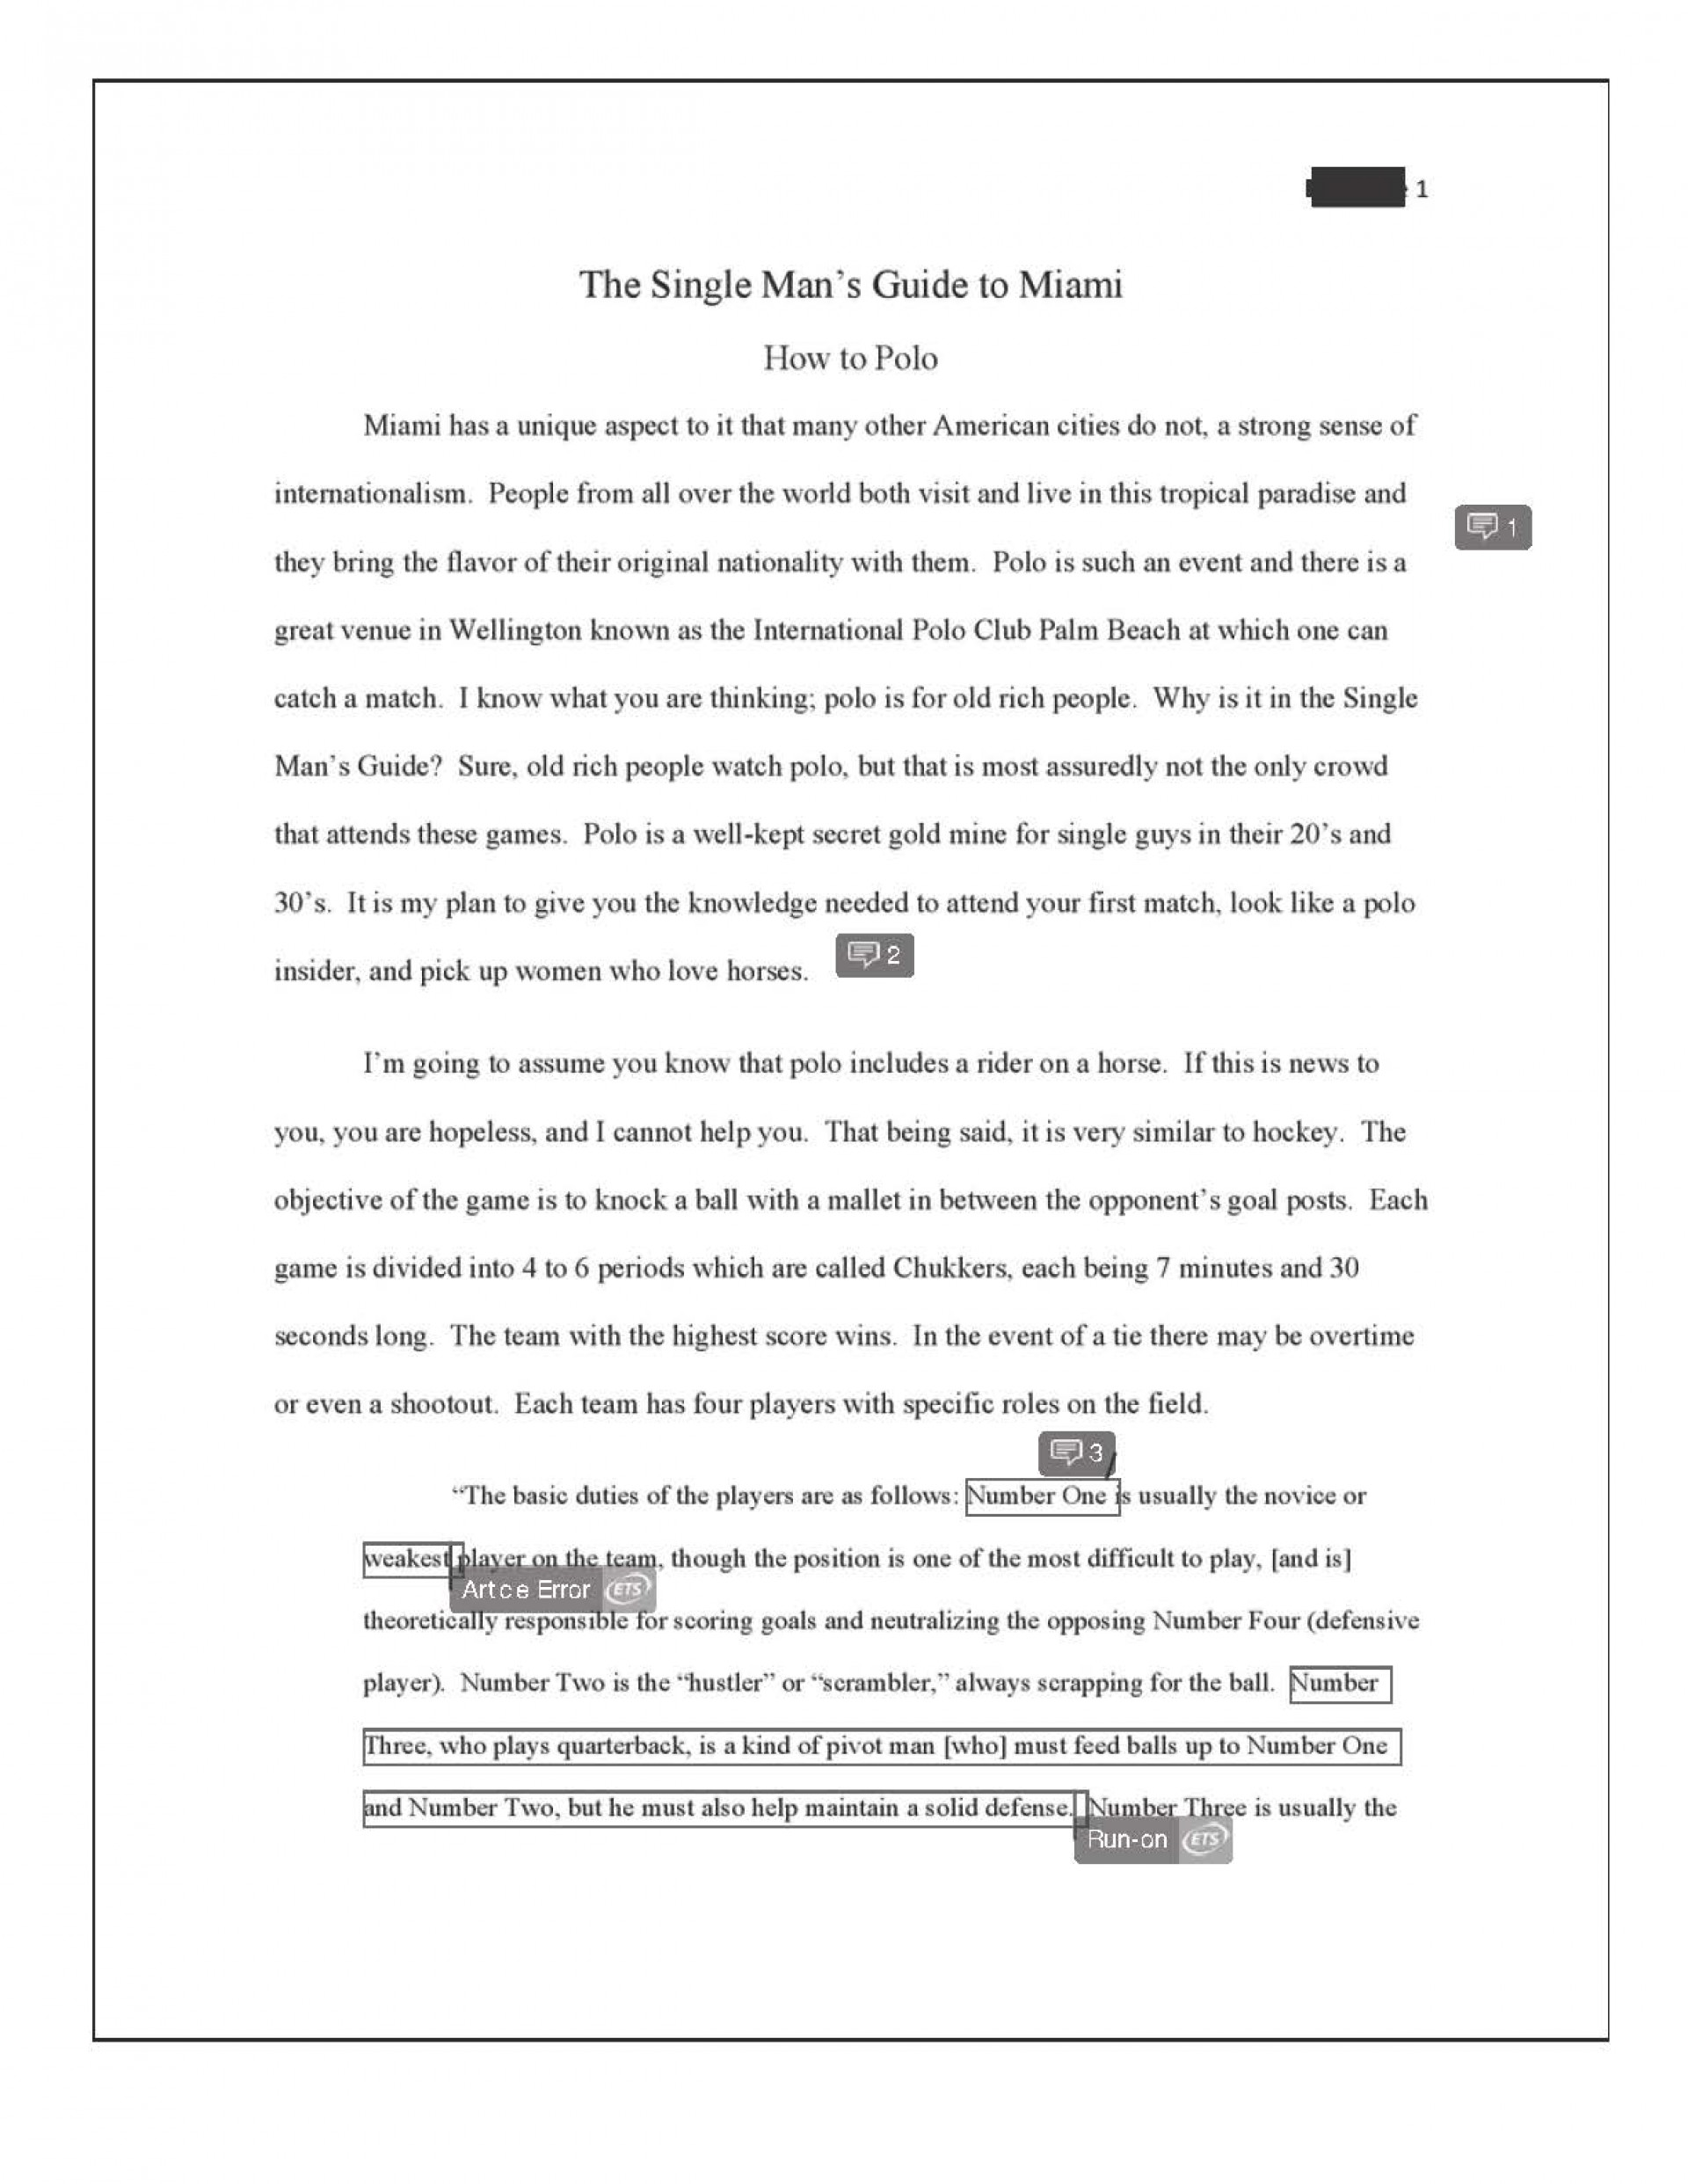 005 Informative Essay Topics Essays Sample Funny Argumentative For Middle School Final How To Polo Redacted P College Students Hilarious Good Remarkable Paper 1920